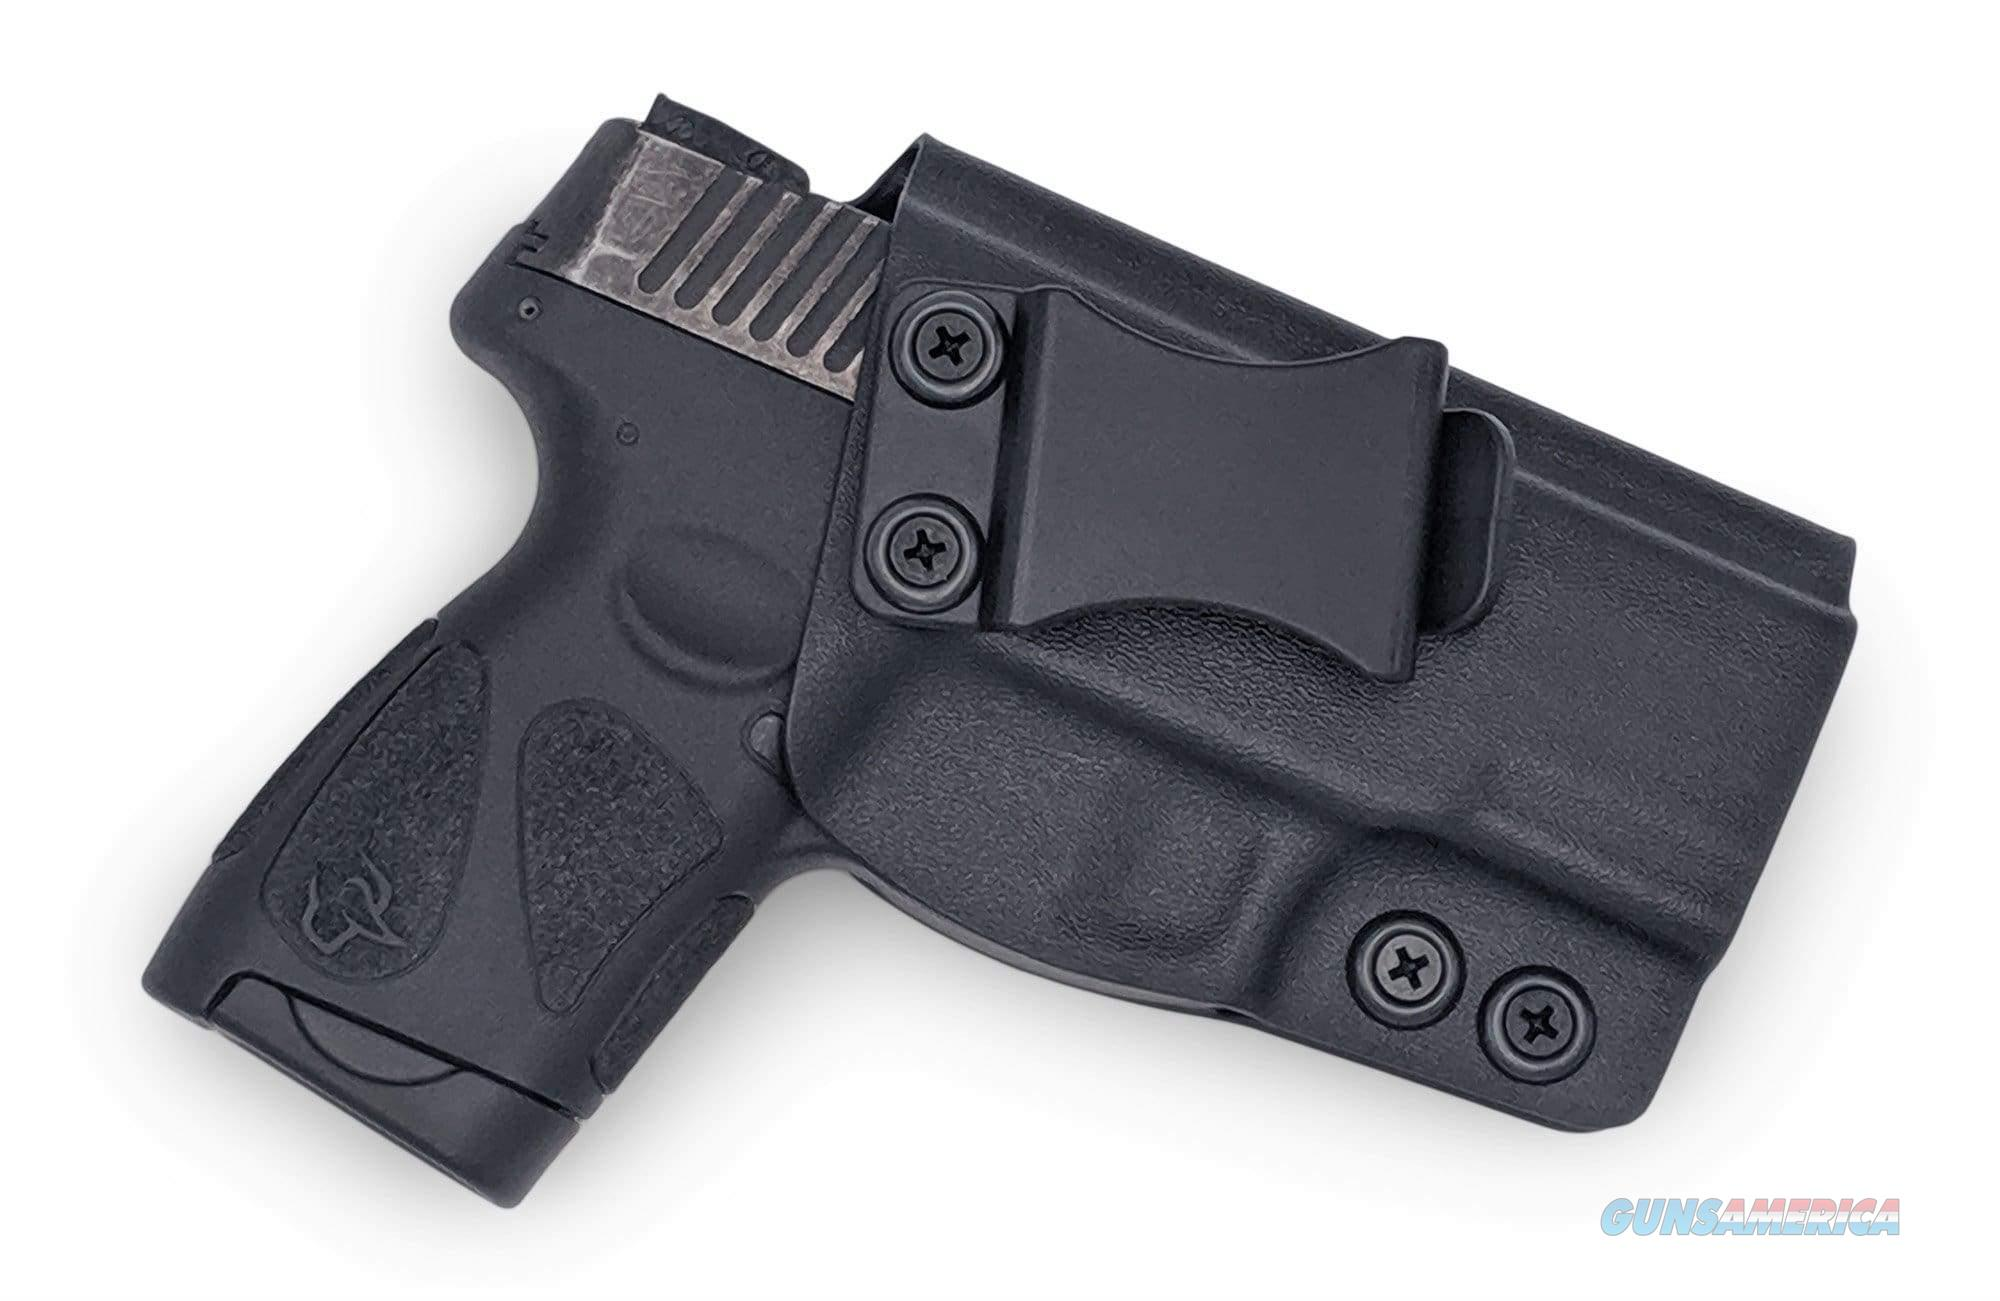 Taurus 111/140 Millennium G2 / G2C / G2S IWB KYDEX Holster, Black - Right Draw  Non-Guns > Holsters and Gunleather > Concealed Carry